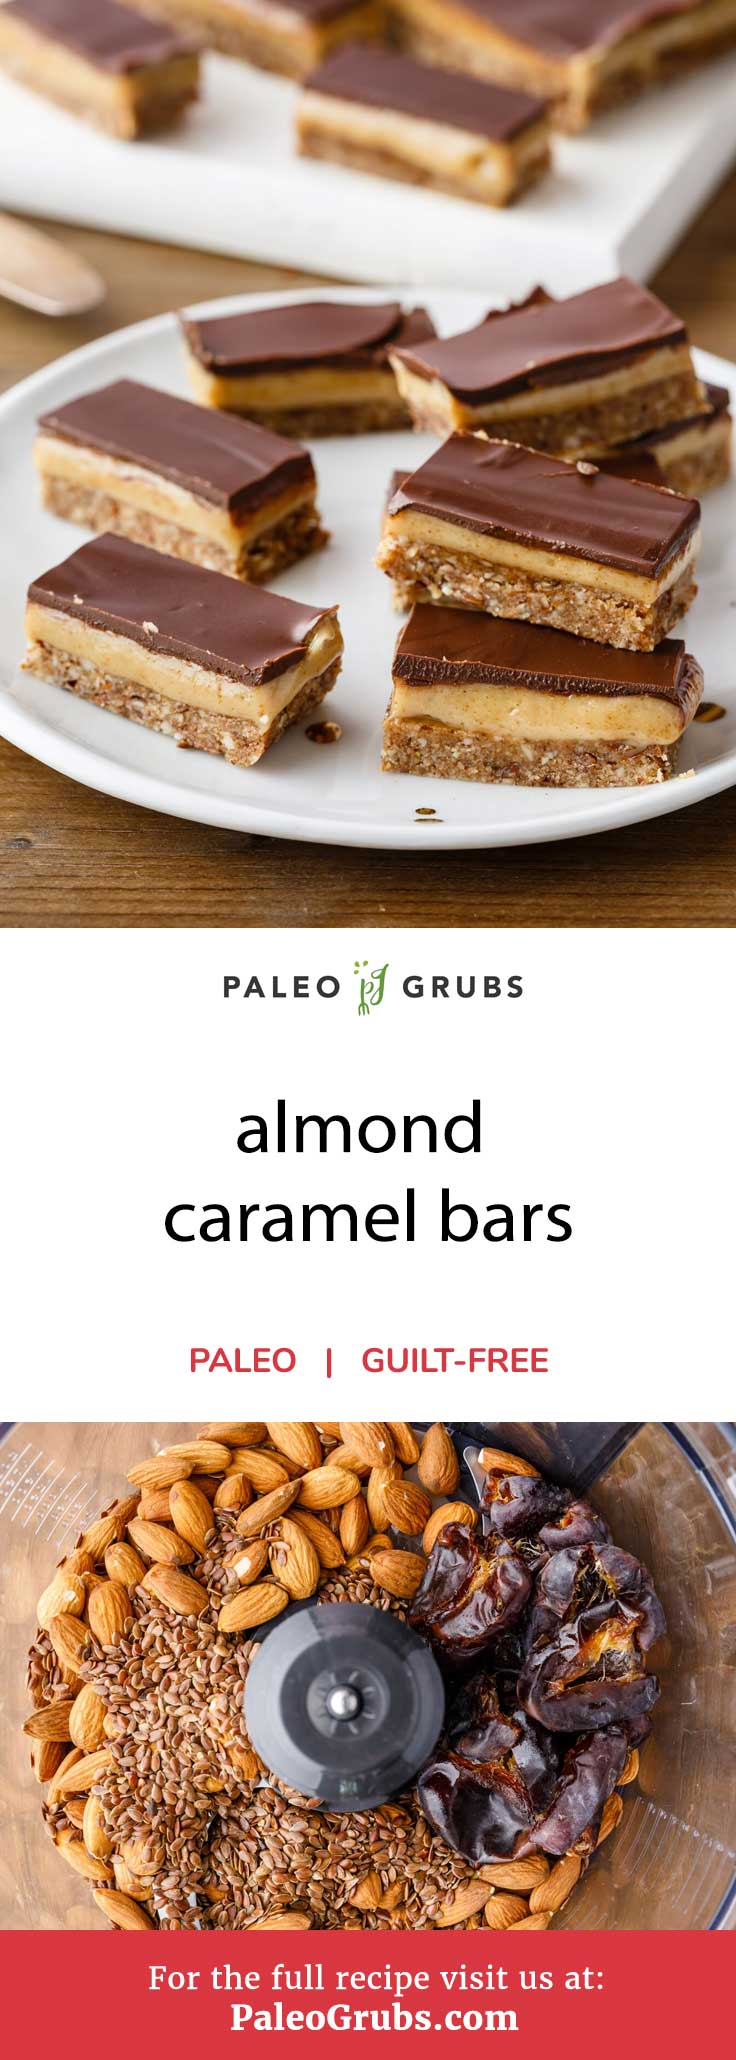 Just wait until you try out these completely paleo-friendly almond caramel bars. They've got a wonderful base, caramel, and chocolate glaze that are all made completely from scratch. They make a great tasty snack that will fuel your body with plenty of energy thanks to all of the healthy ingredients they are made with.